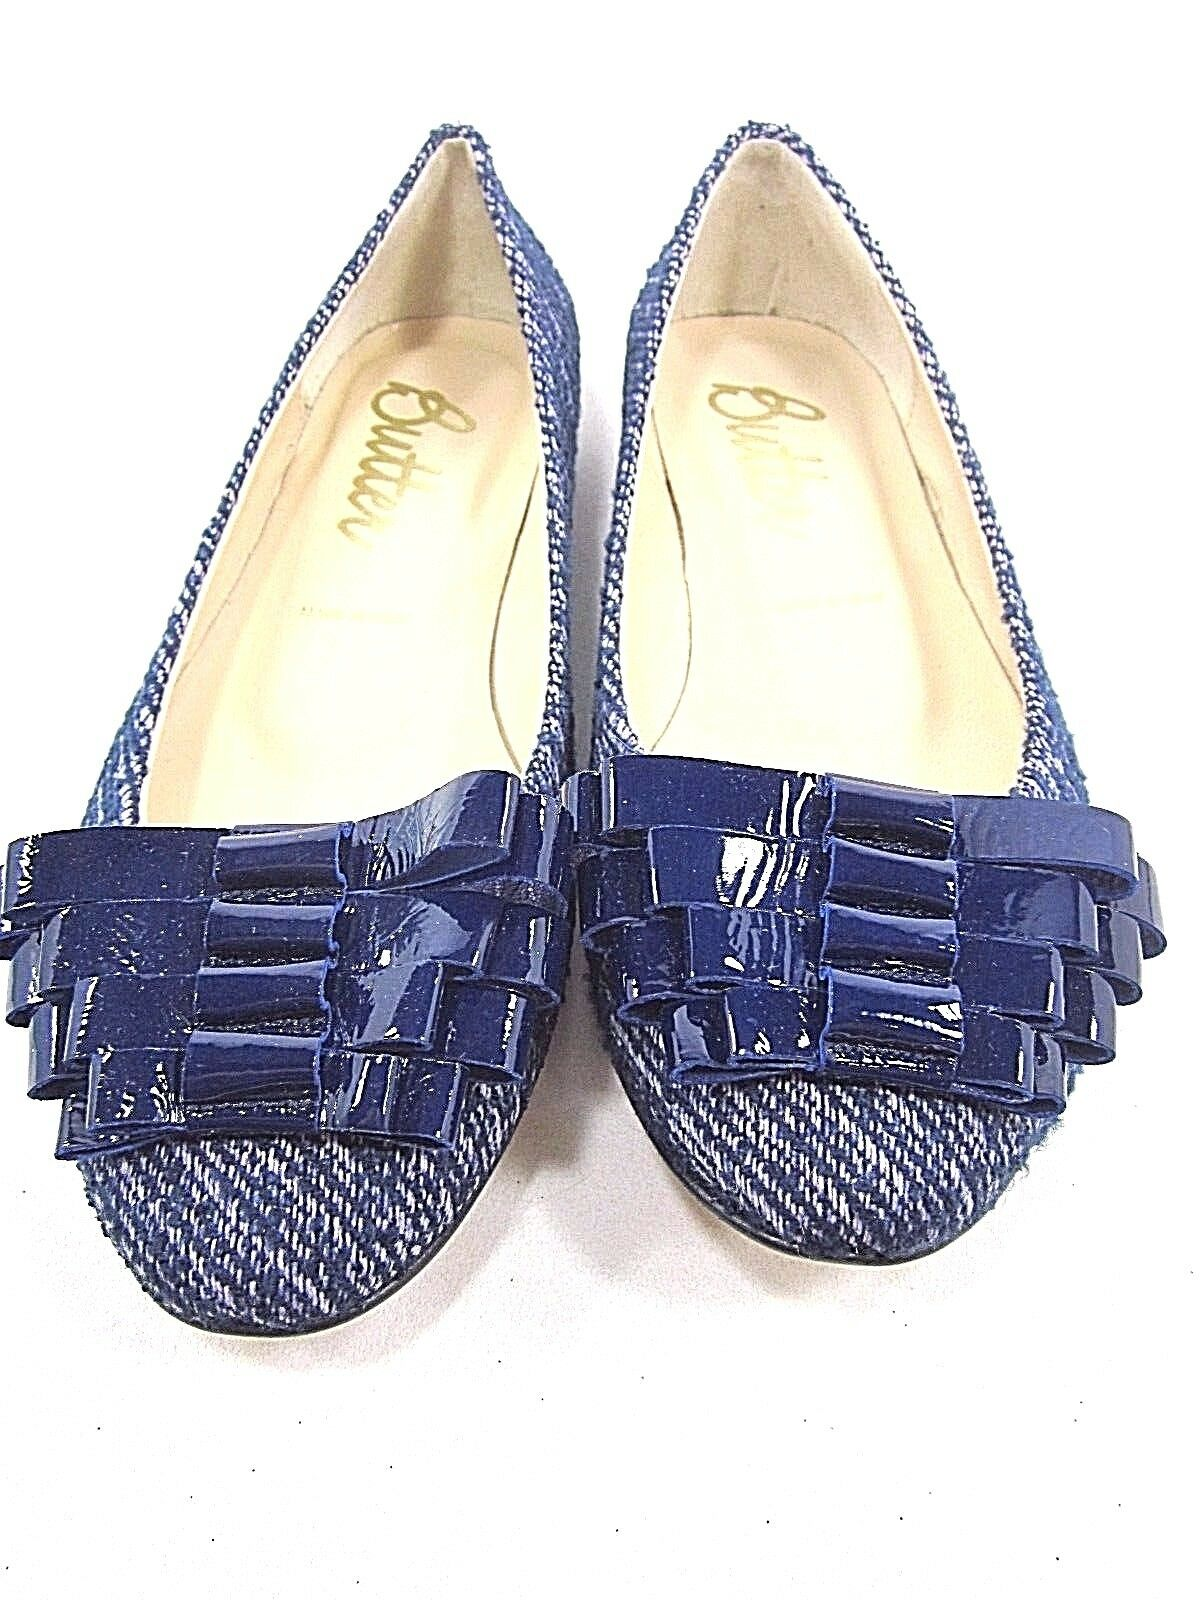 BUTTER, SARINA BALLET FLAT, Donna, Donna, Donna, BLUE COAT, US Size 7 M, NEW WITH BOX 5a98e0